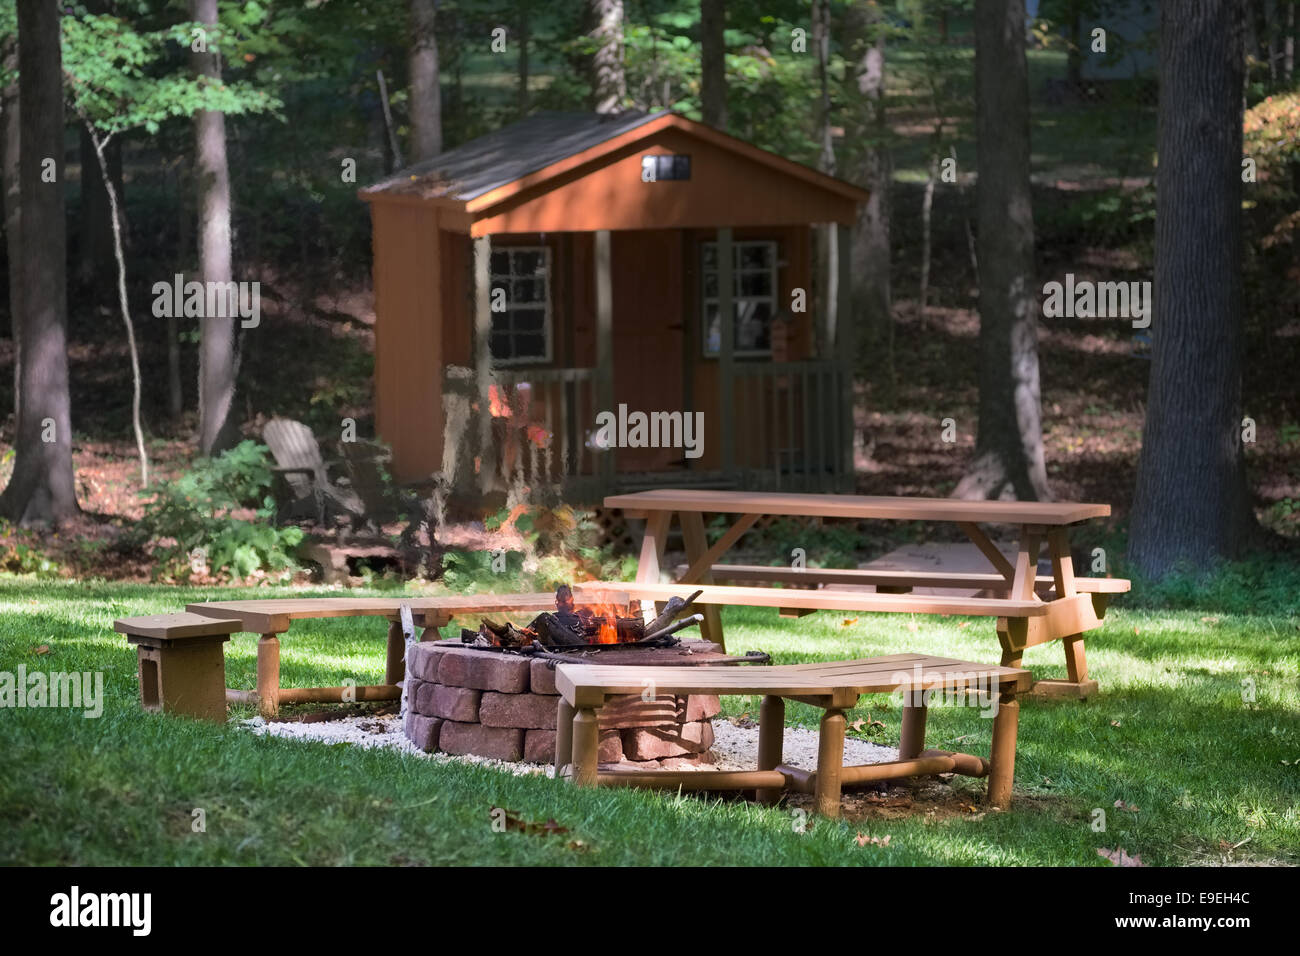 Backyard fire pit and picnic area - Stock Image